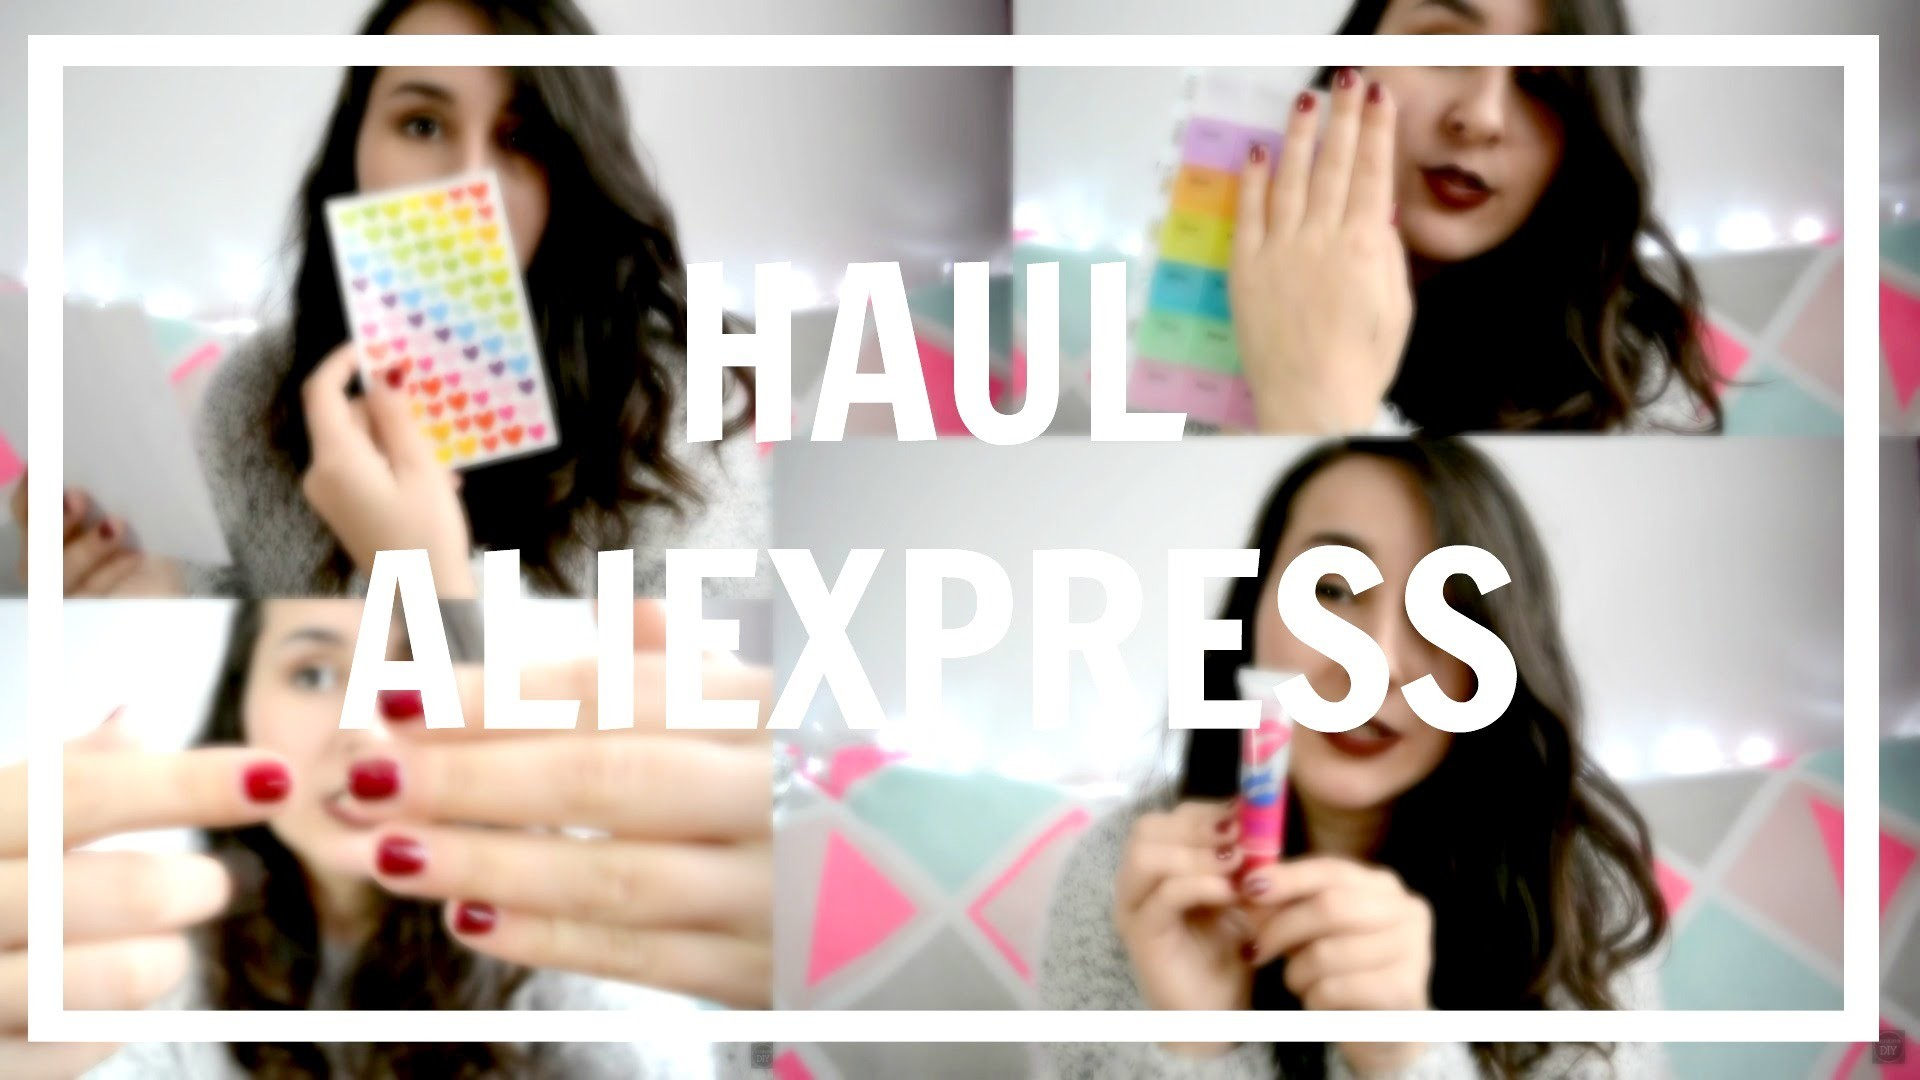 SUPER HAUL ALIEXPRESS 1 (PAPELERIA, BELLEZA, RANDOM. ) | Chicasinsentido DIY